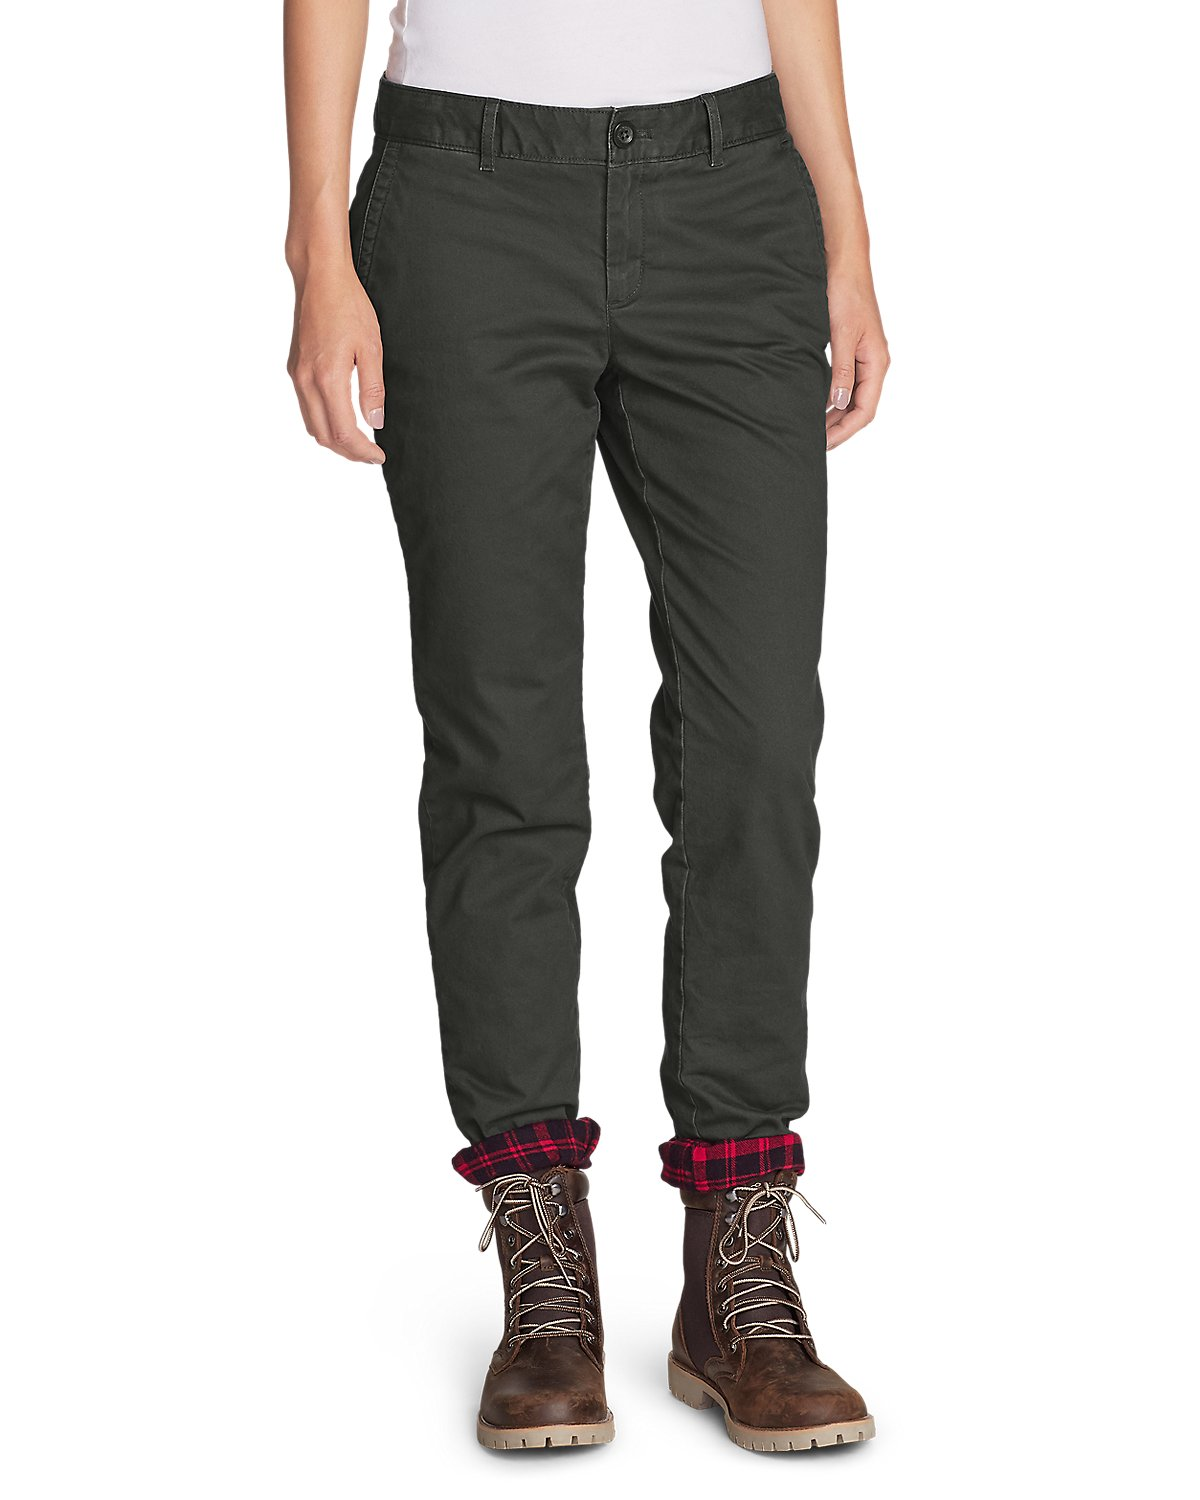 Legend Wash Flanneled-Lined Pants